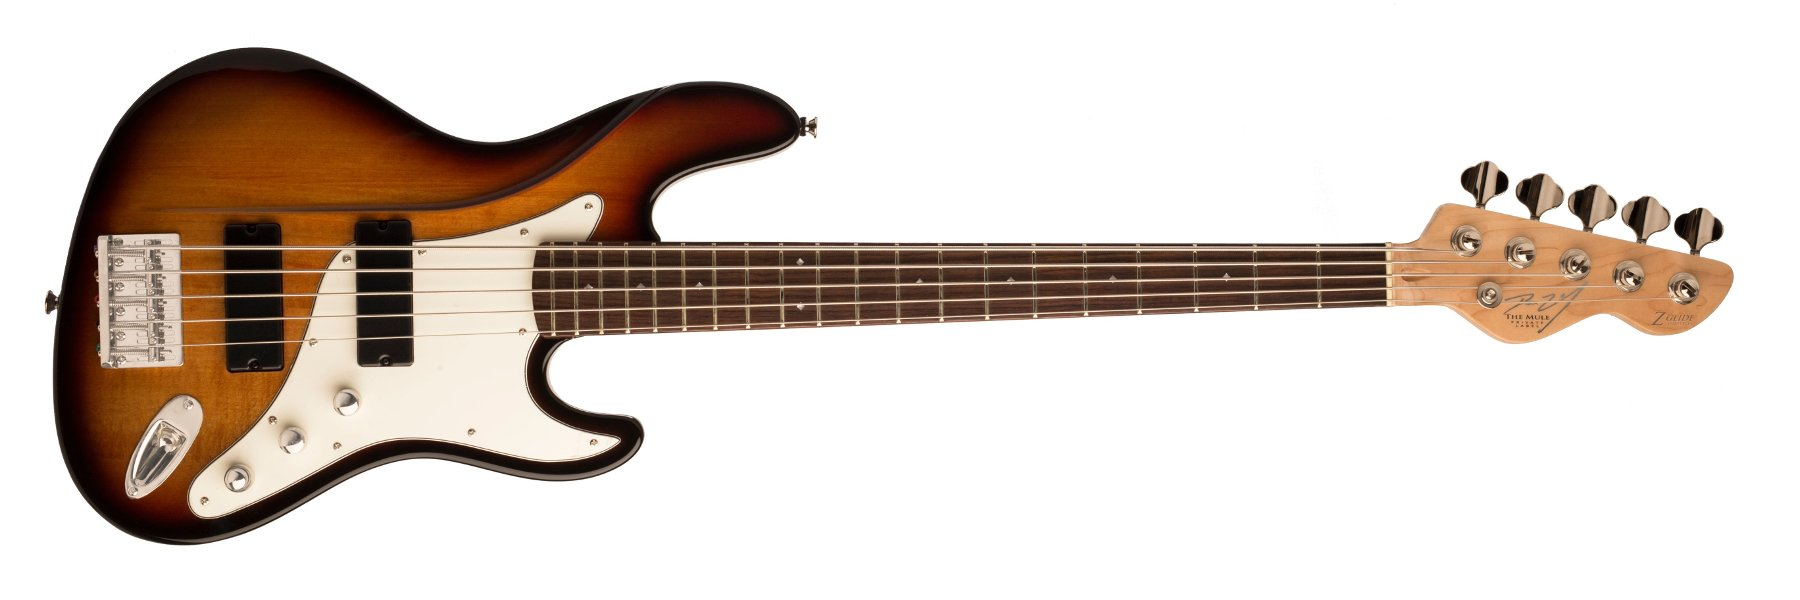 5-String Electric Bass with Z-Glide Neck and Active Humbuckers